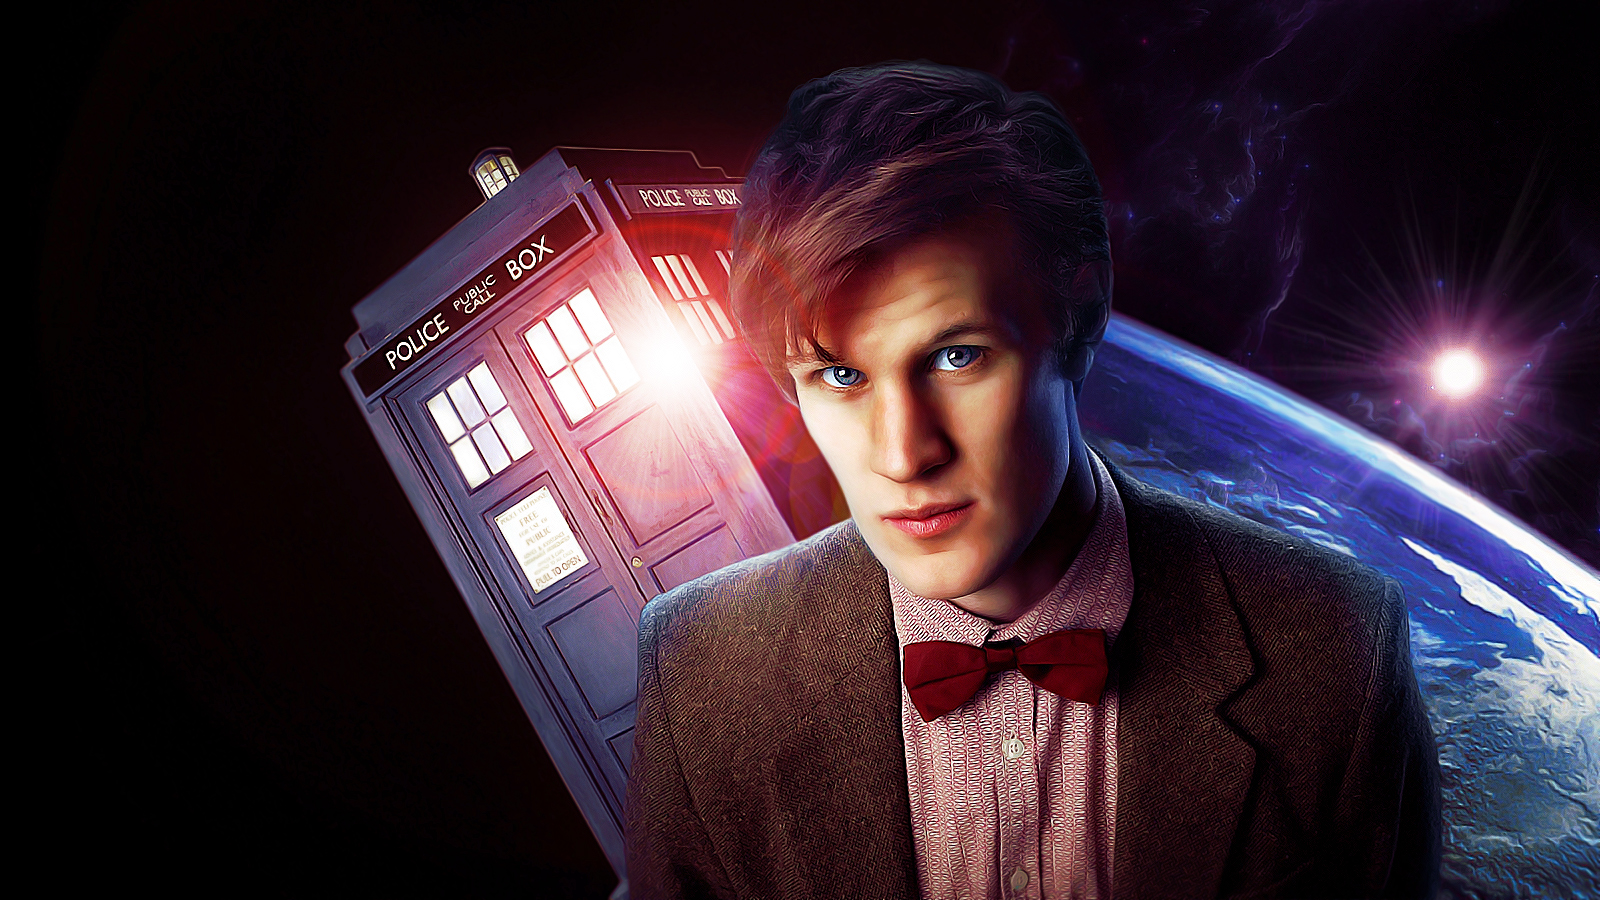 TARDIS Matt Wallpaper 1600x900 TARDIS Matt Smith Eleventh Doctor 1600x900